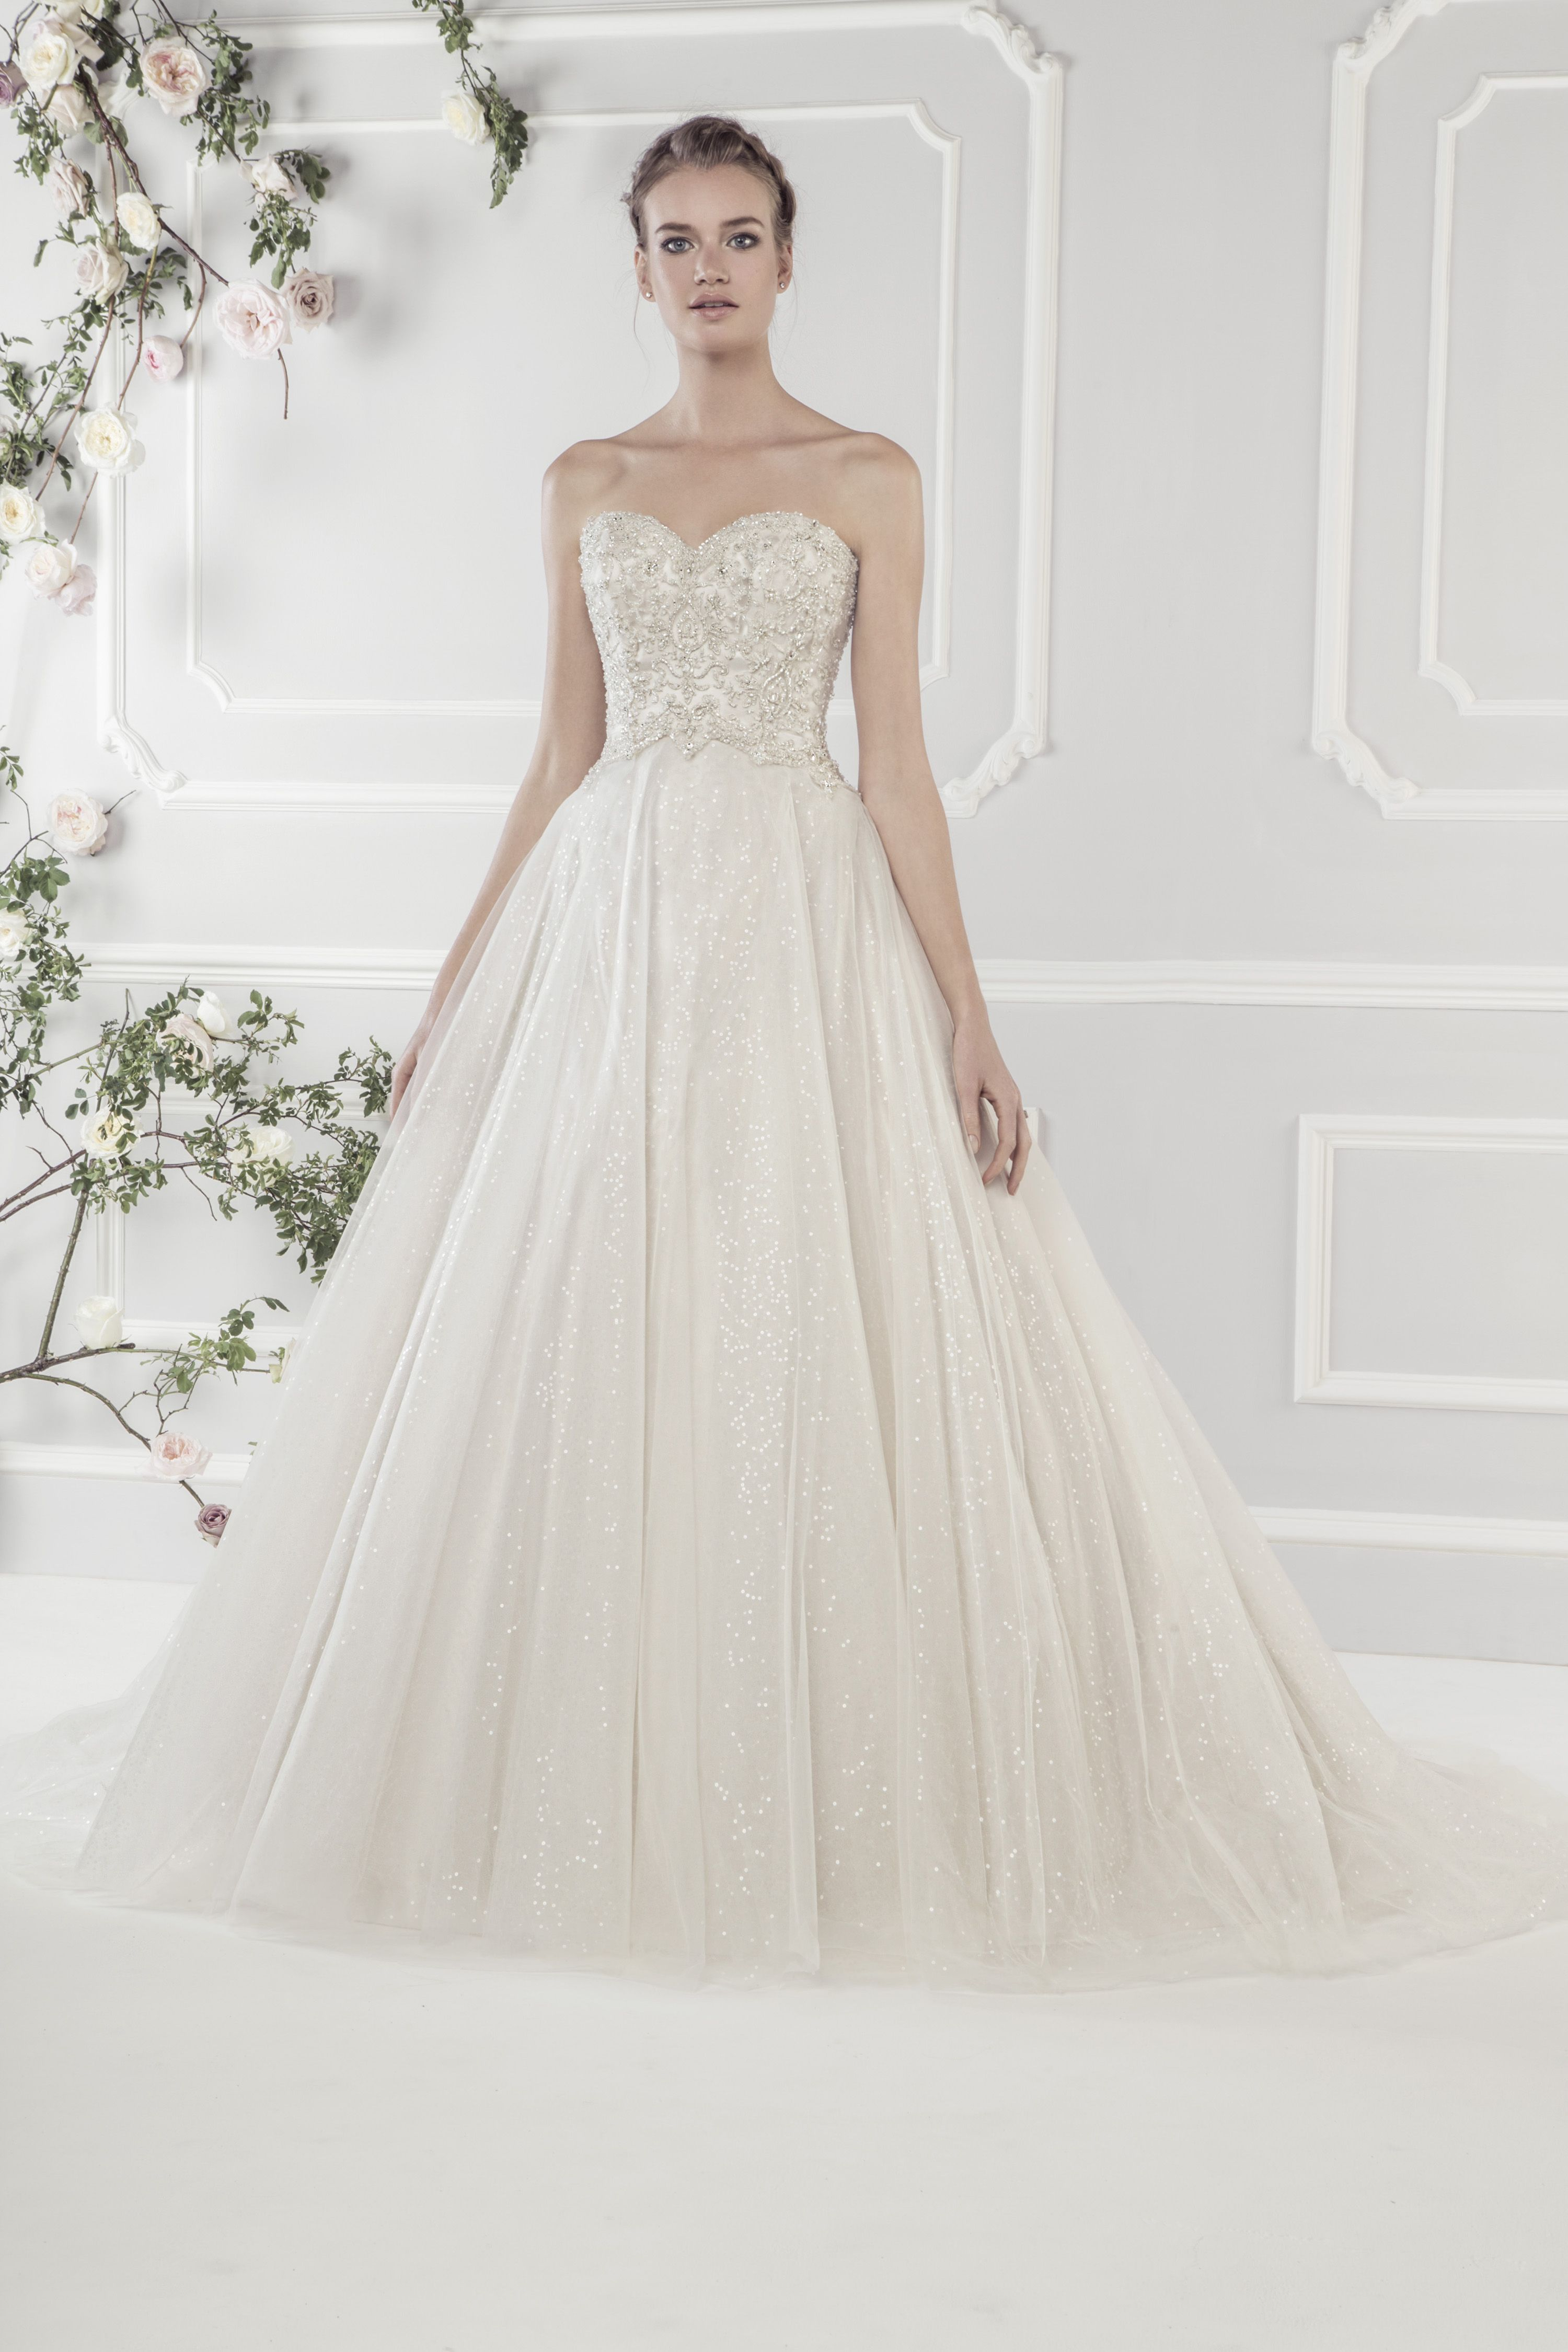 Dress Gallery | Pinterest | Ellis bridal, Wedding dress gallery and ...